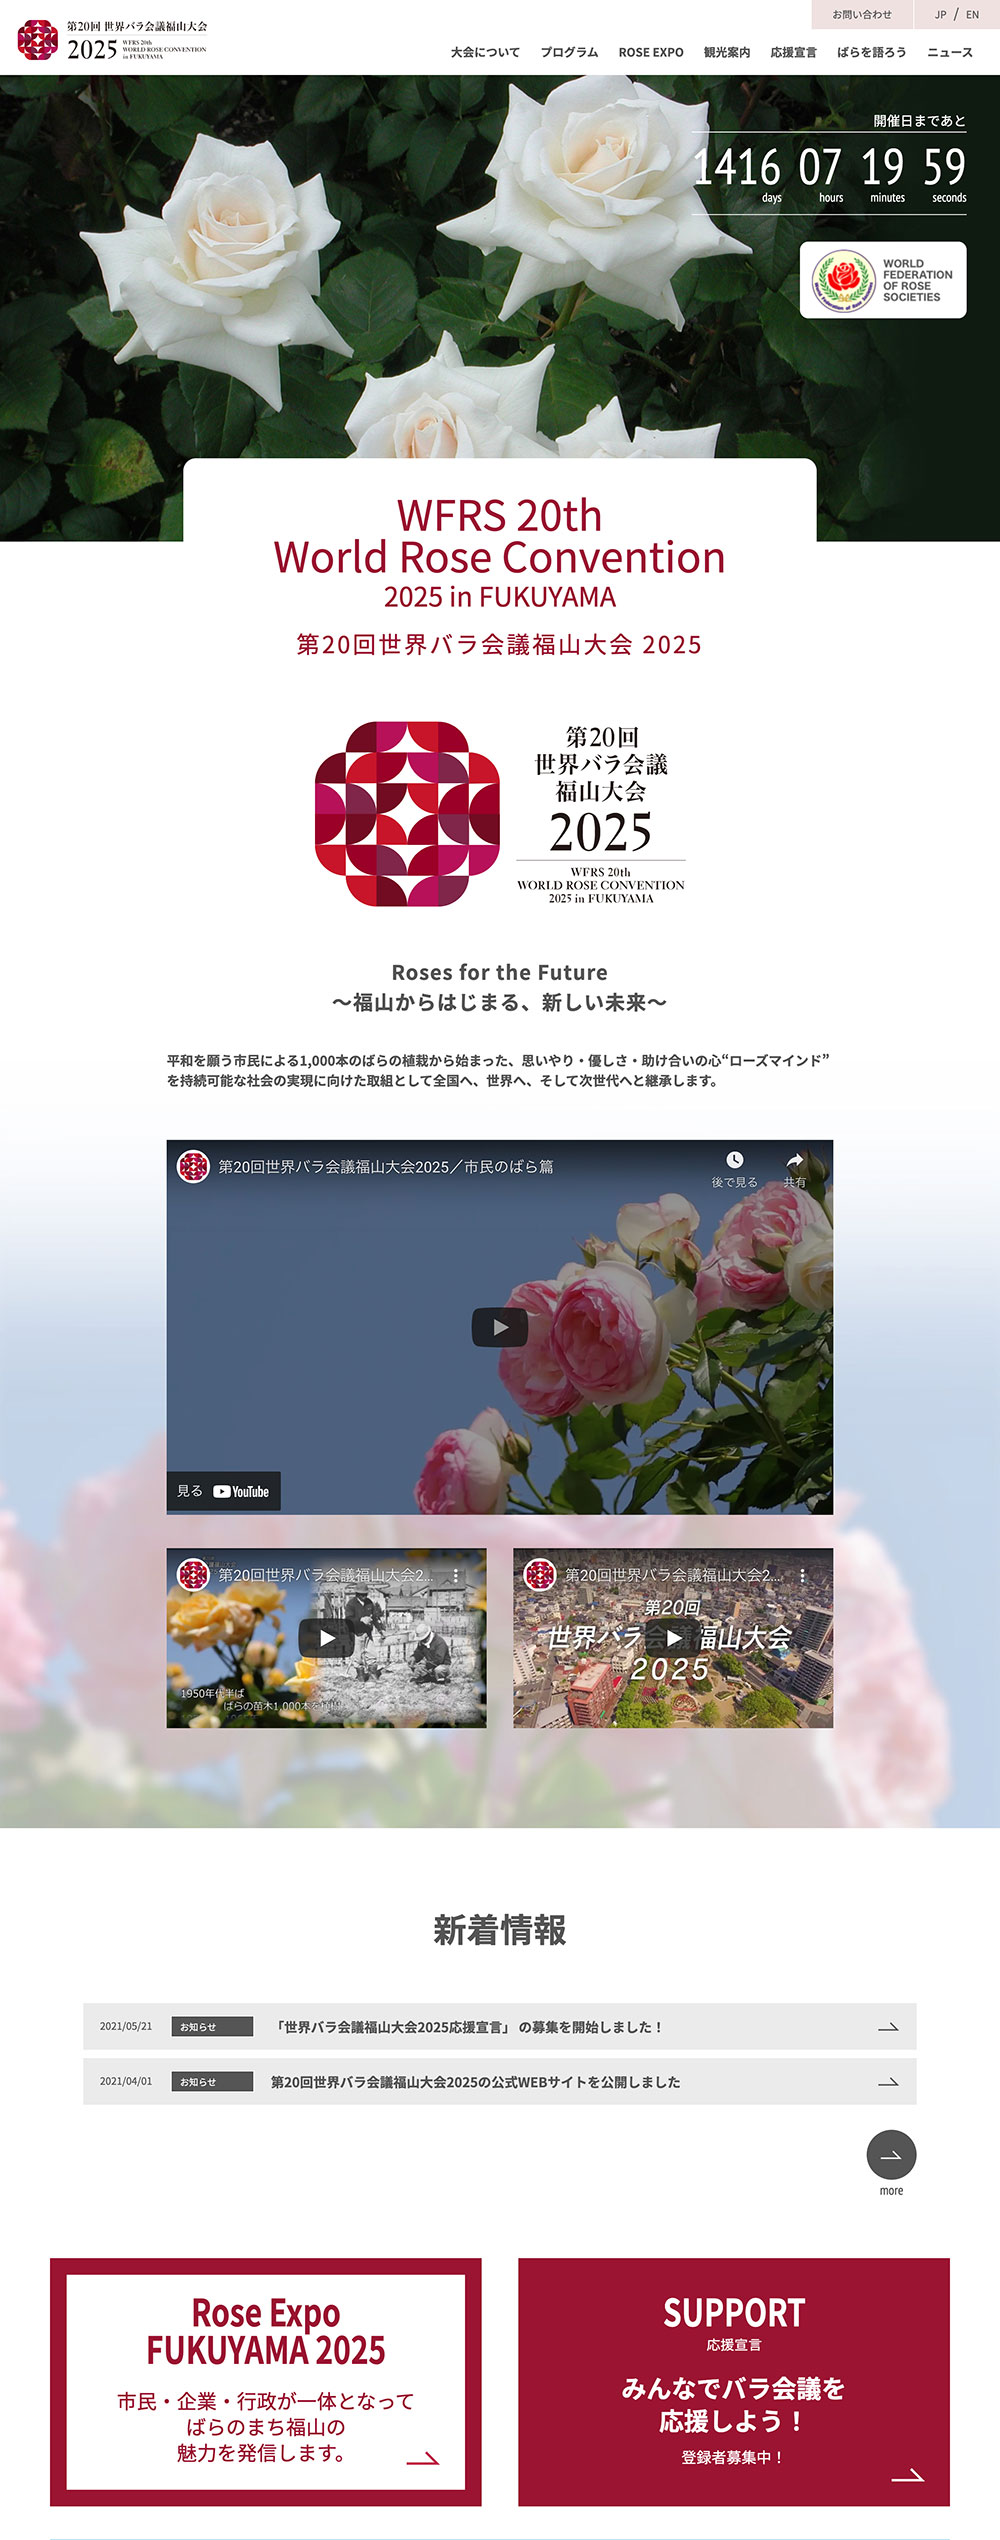 WFRS 20th World Rose Convention